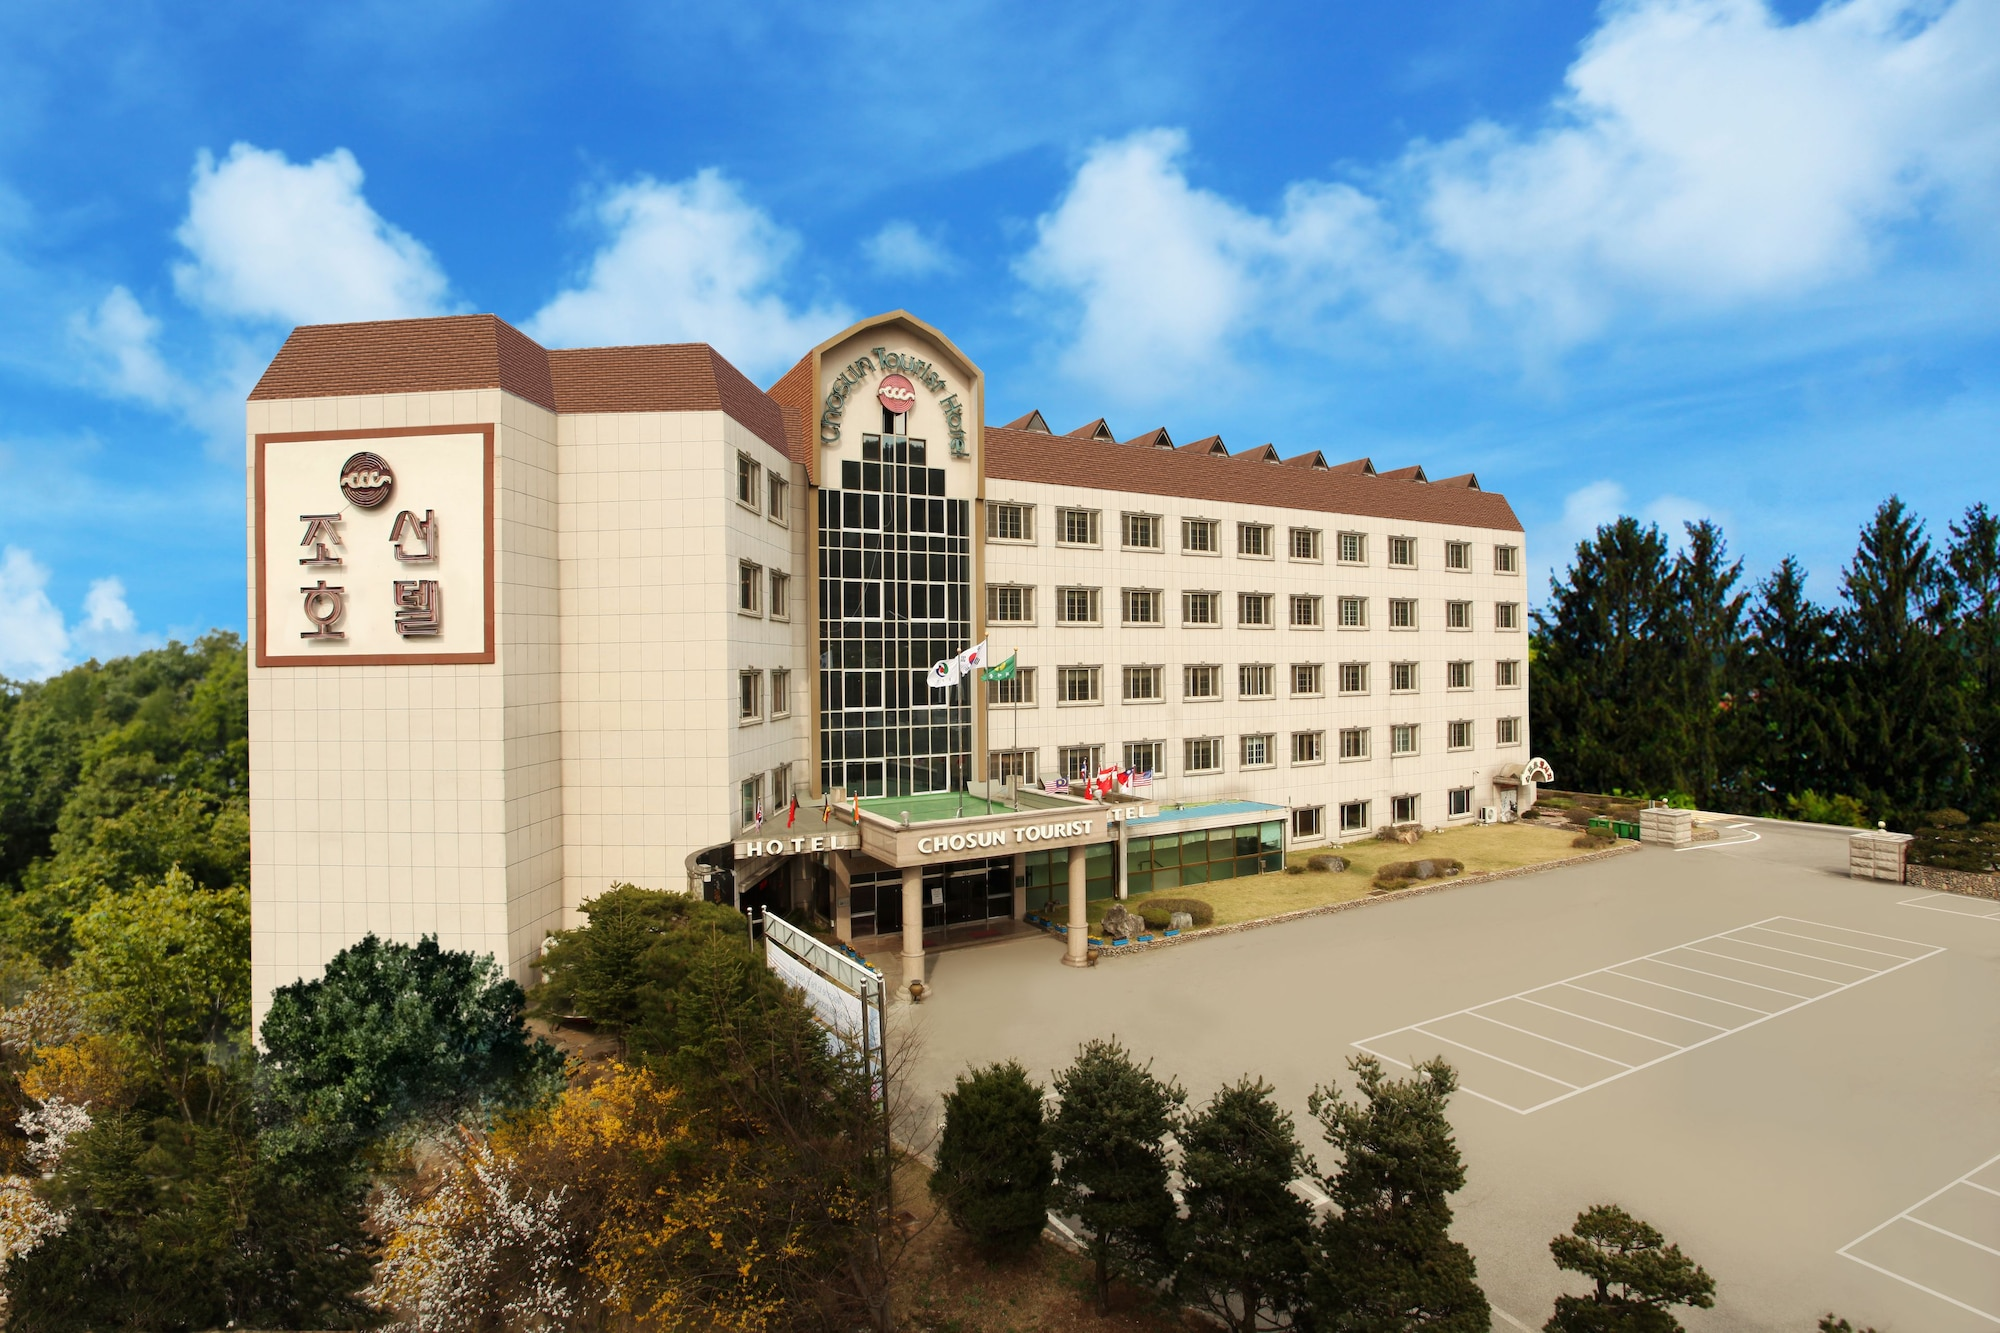 The Chosun Hotel Suanbo, Chungju